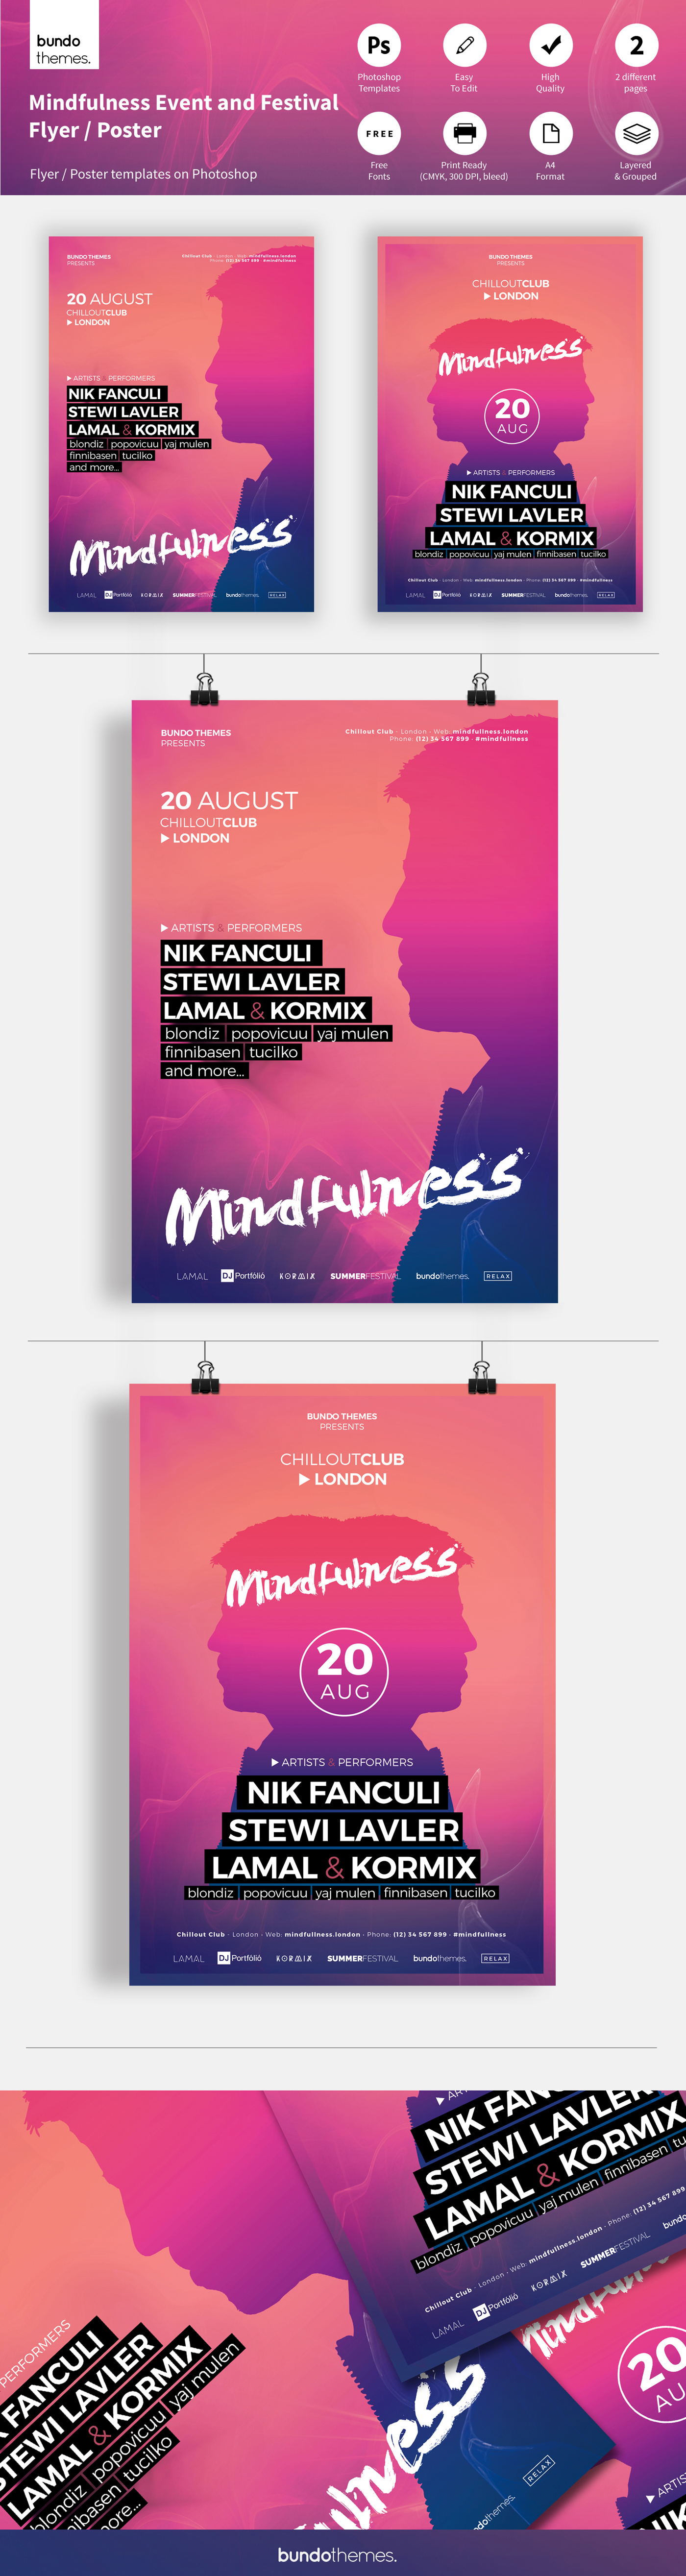 flyer template Event flyer mindfulness bundothemes poster trendy abstract colorful festival